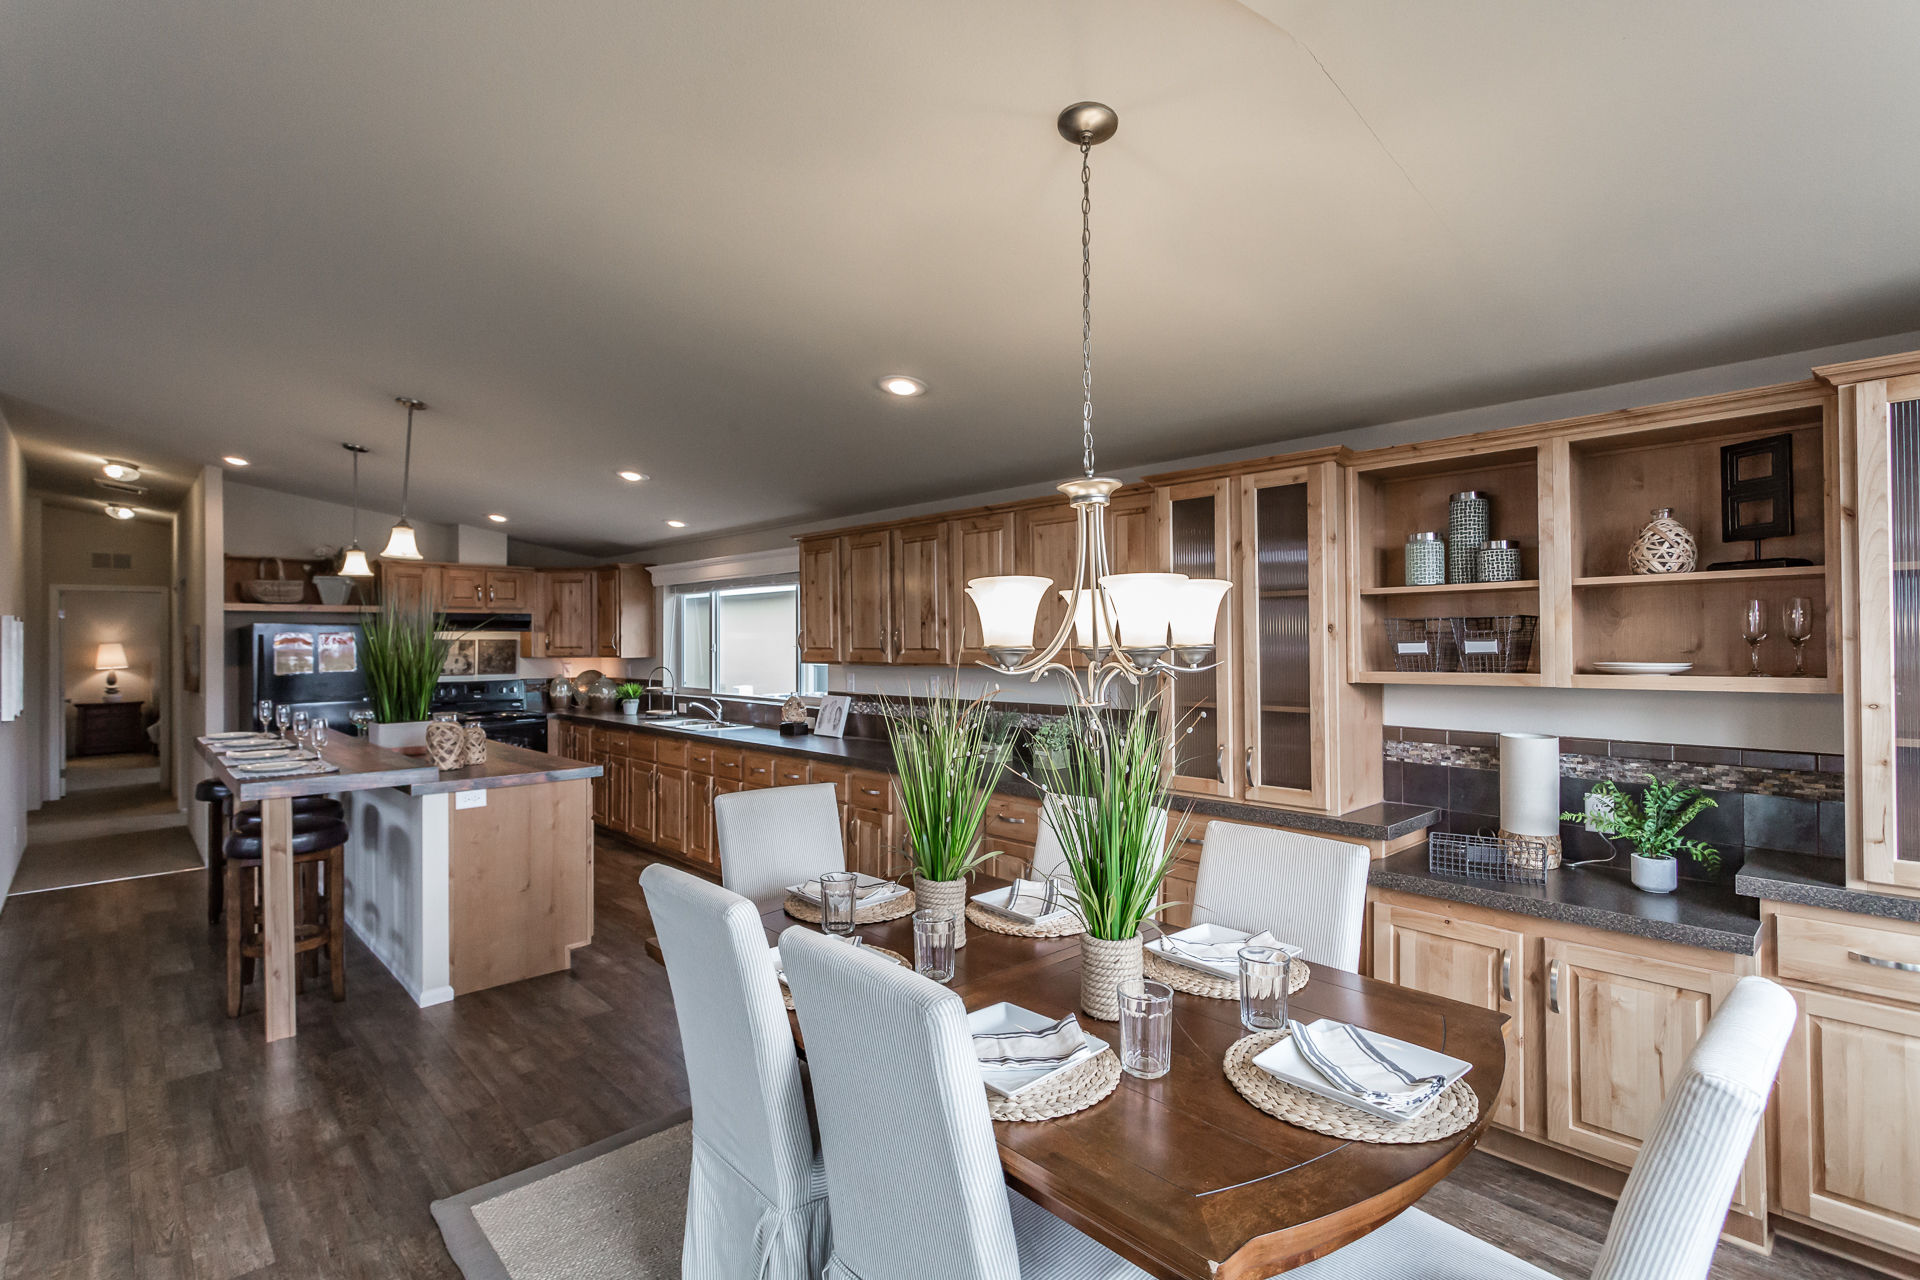 Modular Homes Washington State >> Sunset Bay Plus 3 bed / 2 bath / 1550 sqft affordable home for $81900 | Model 3104G28563B from ...